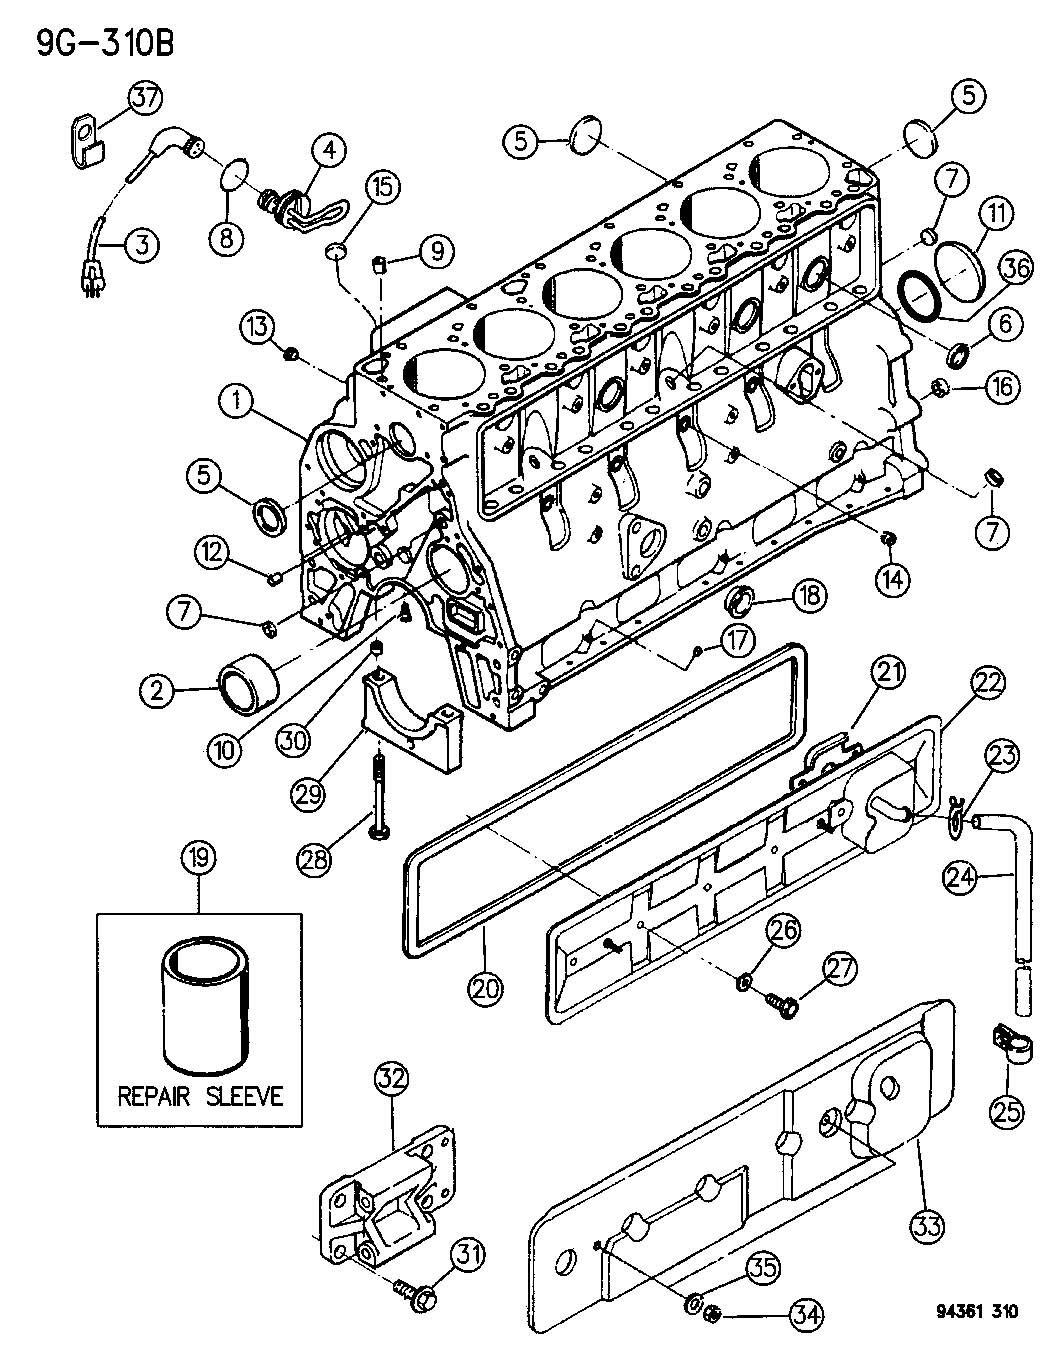 682dg Gm Gmc Envoy Xuv 2004 Gmc Envoy Xuv Tailgate Will Open furthermore 2005 Chevy Colorado Wiring Diagram besides 2004 Lly 6 6l Gm Trucks Duramax Fast Idle Wiring Diagram moreover 2nd Gen 12v moreover 2000 Chevy Venture Starter Wiring Diagram. on electrical wiring diagram 2006 gmc canyon